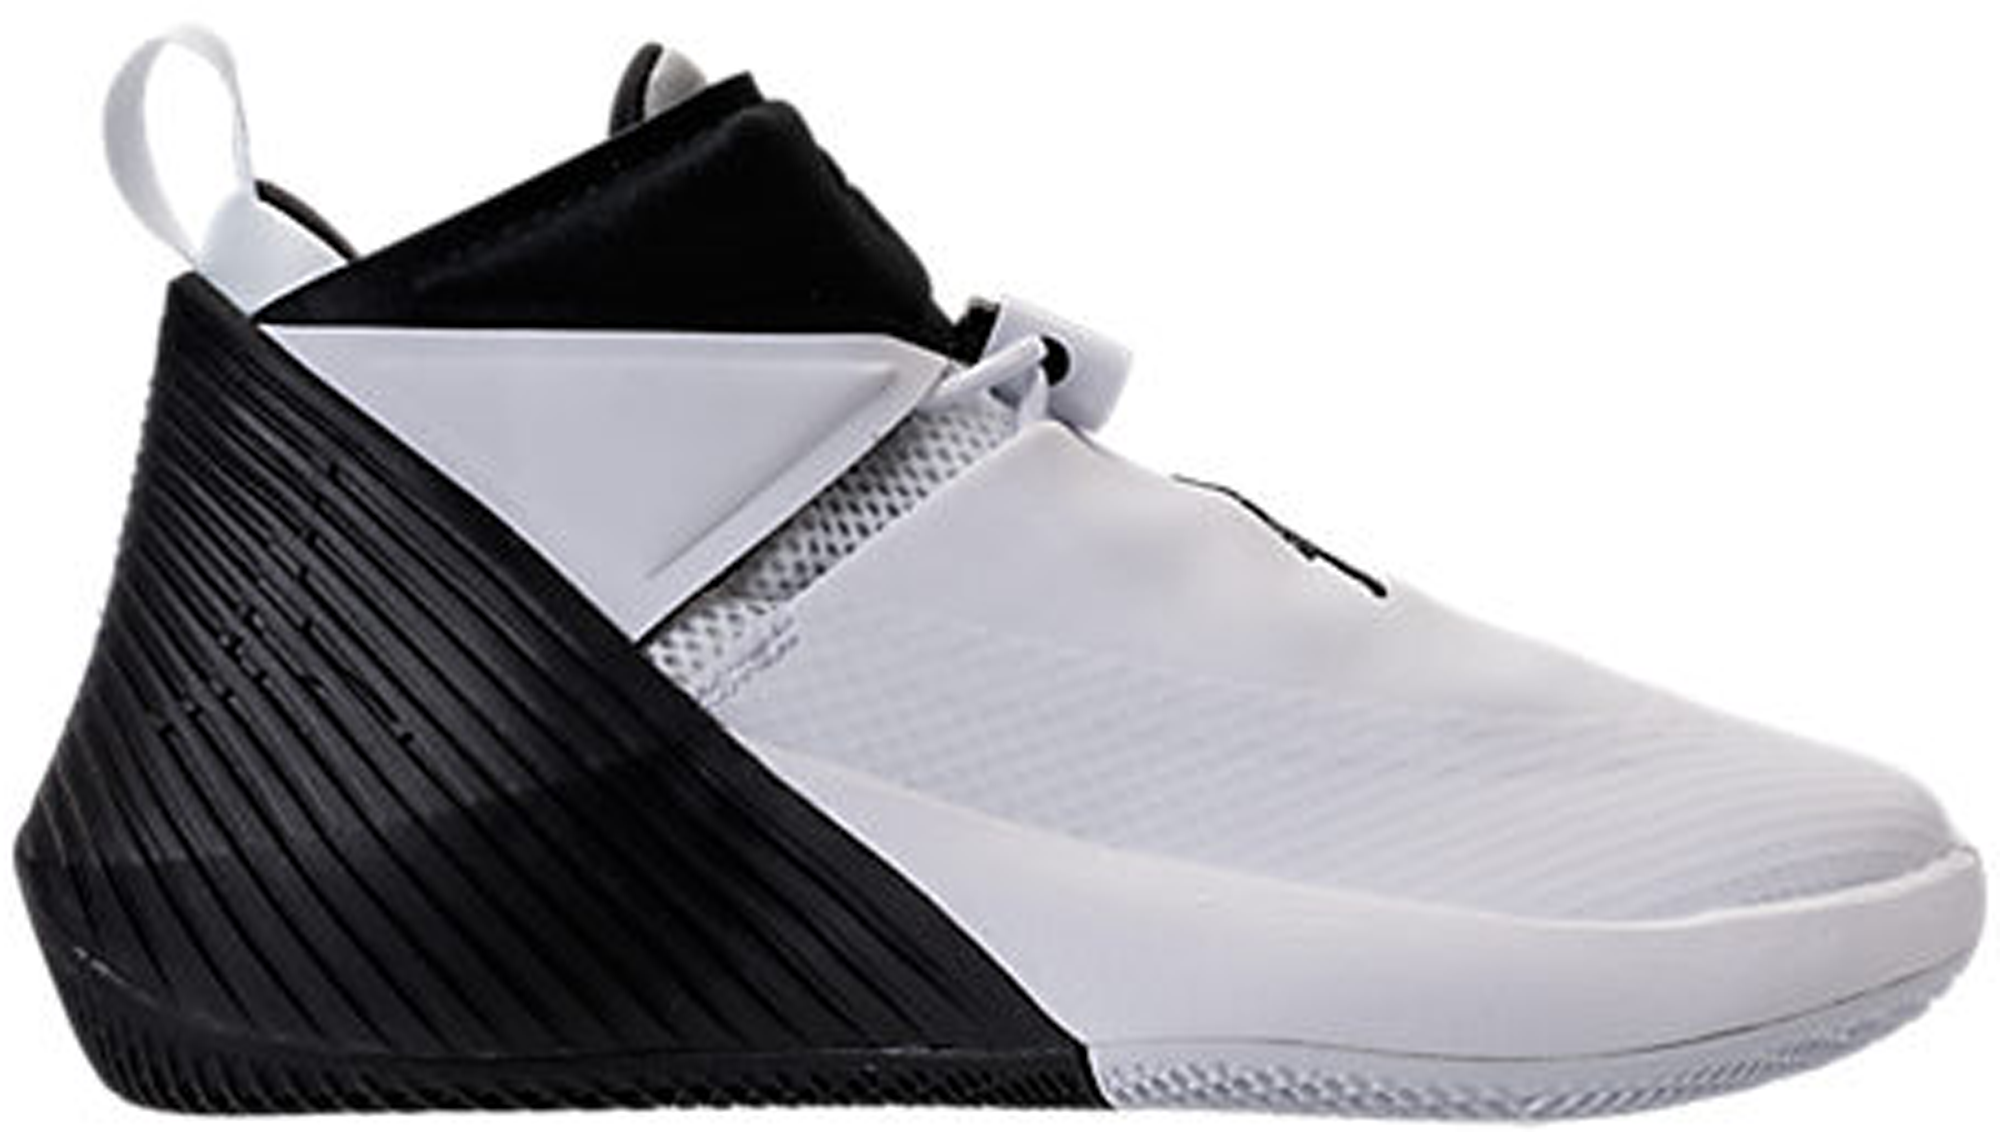 Jordan Why Not Zer0.1 2-Way (GS)